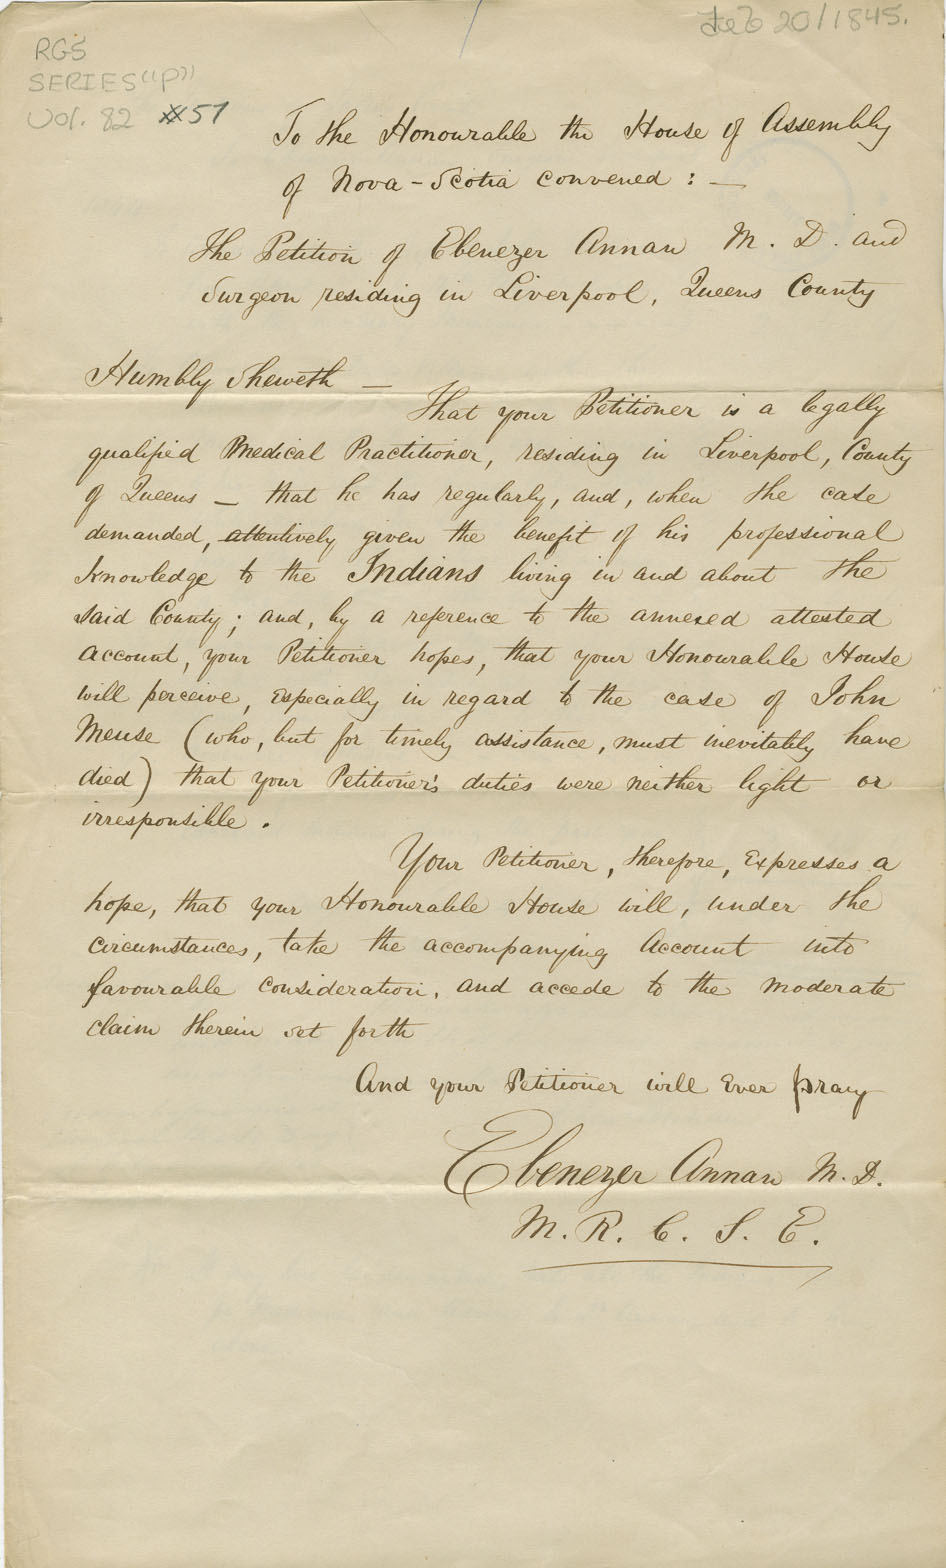 Petition of Ebenezer Annan of Liverpool for the expenses of attending to sick Mi'kmaq.